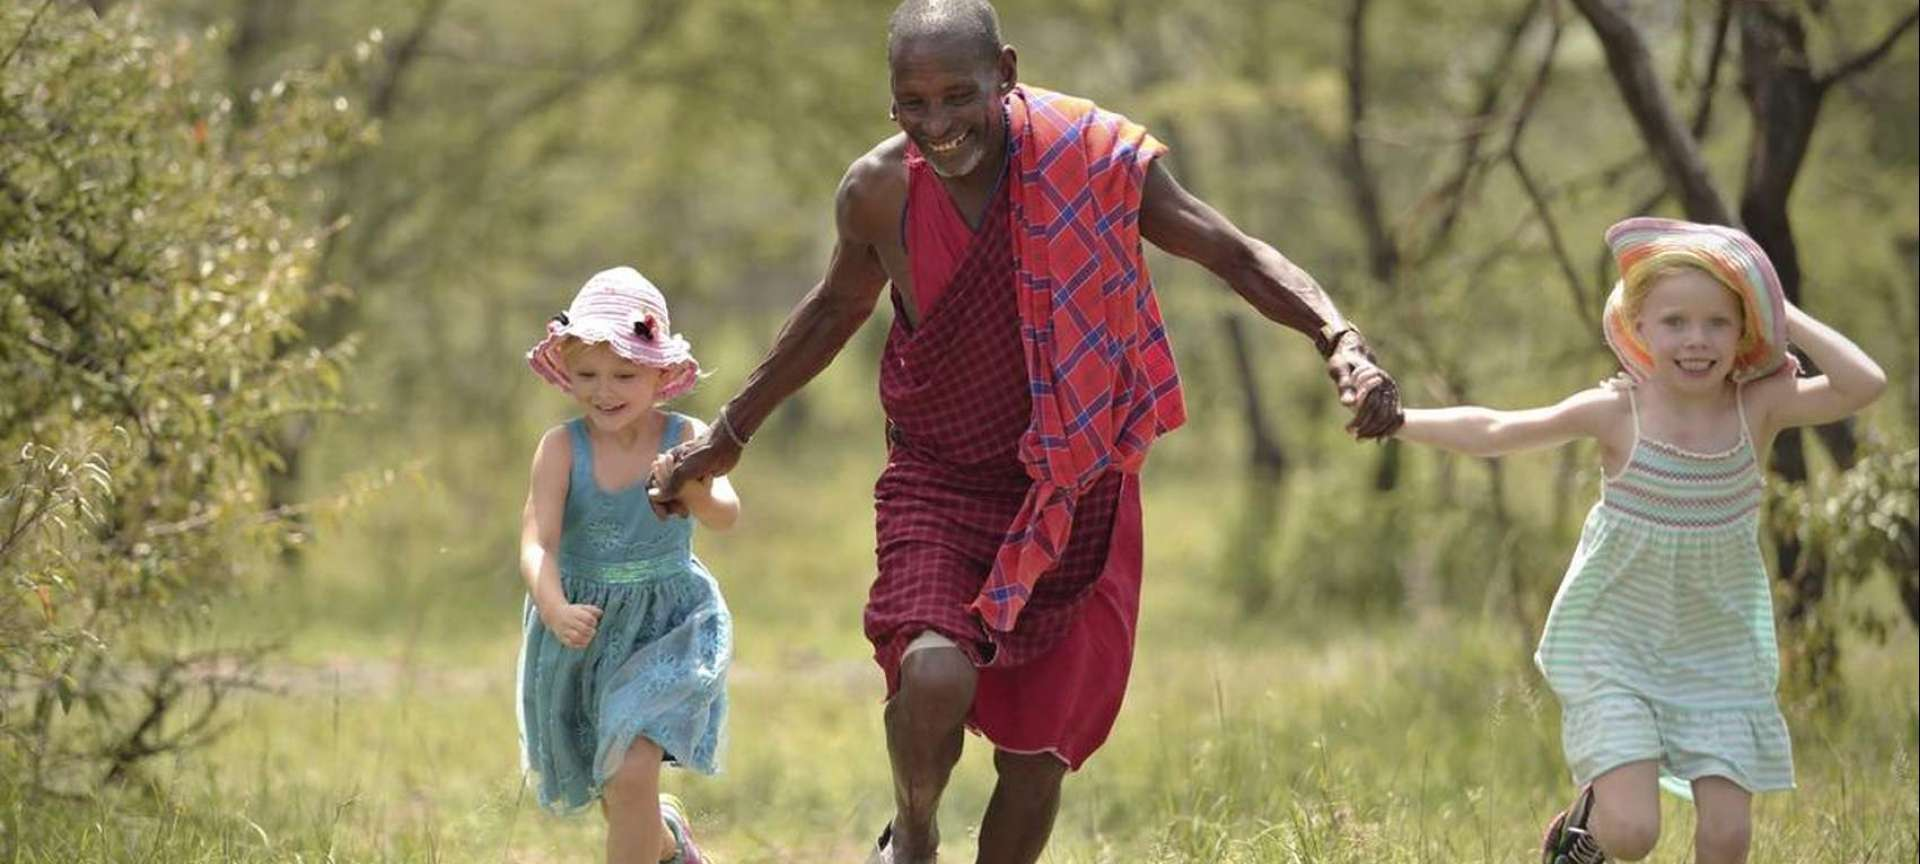 Family & kid-friendly safaris in Africa - Africa Wildlife Safaris